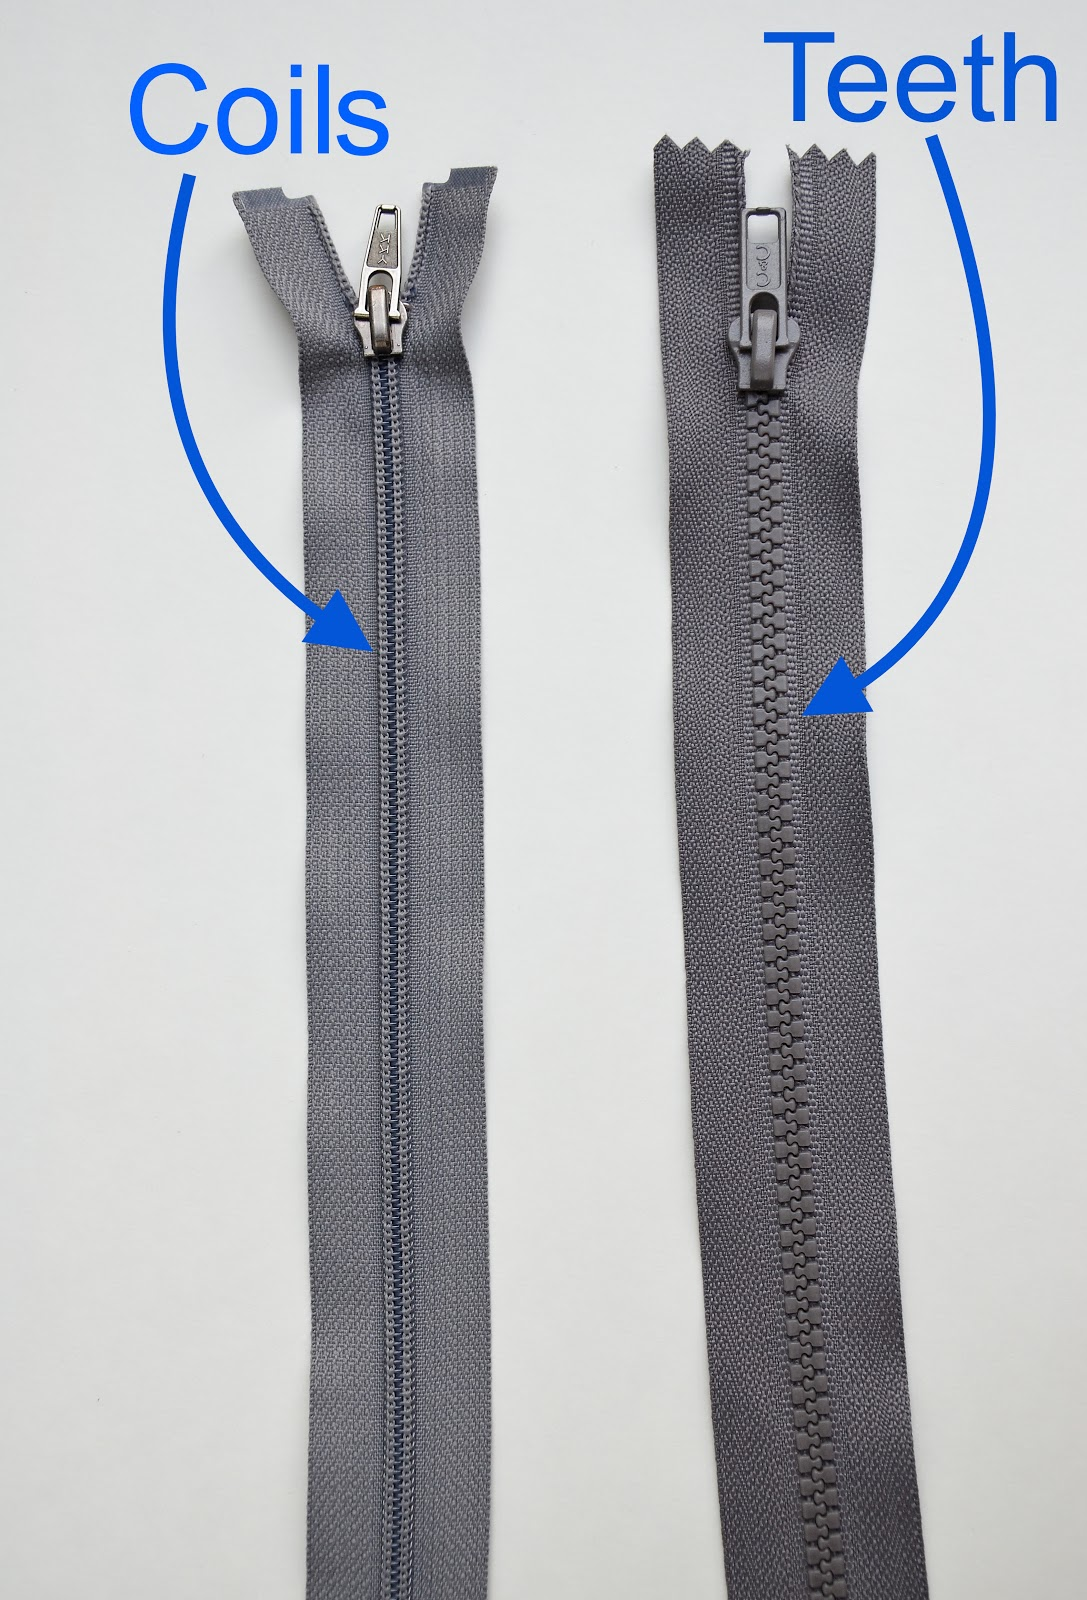 What can make a zipper run smoothly?